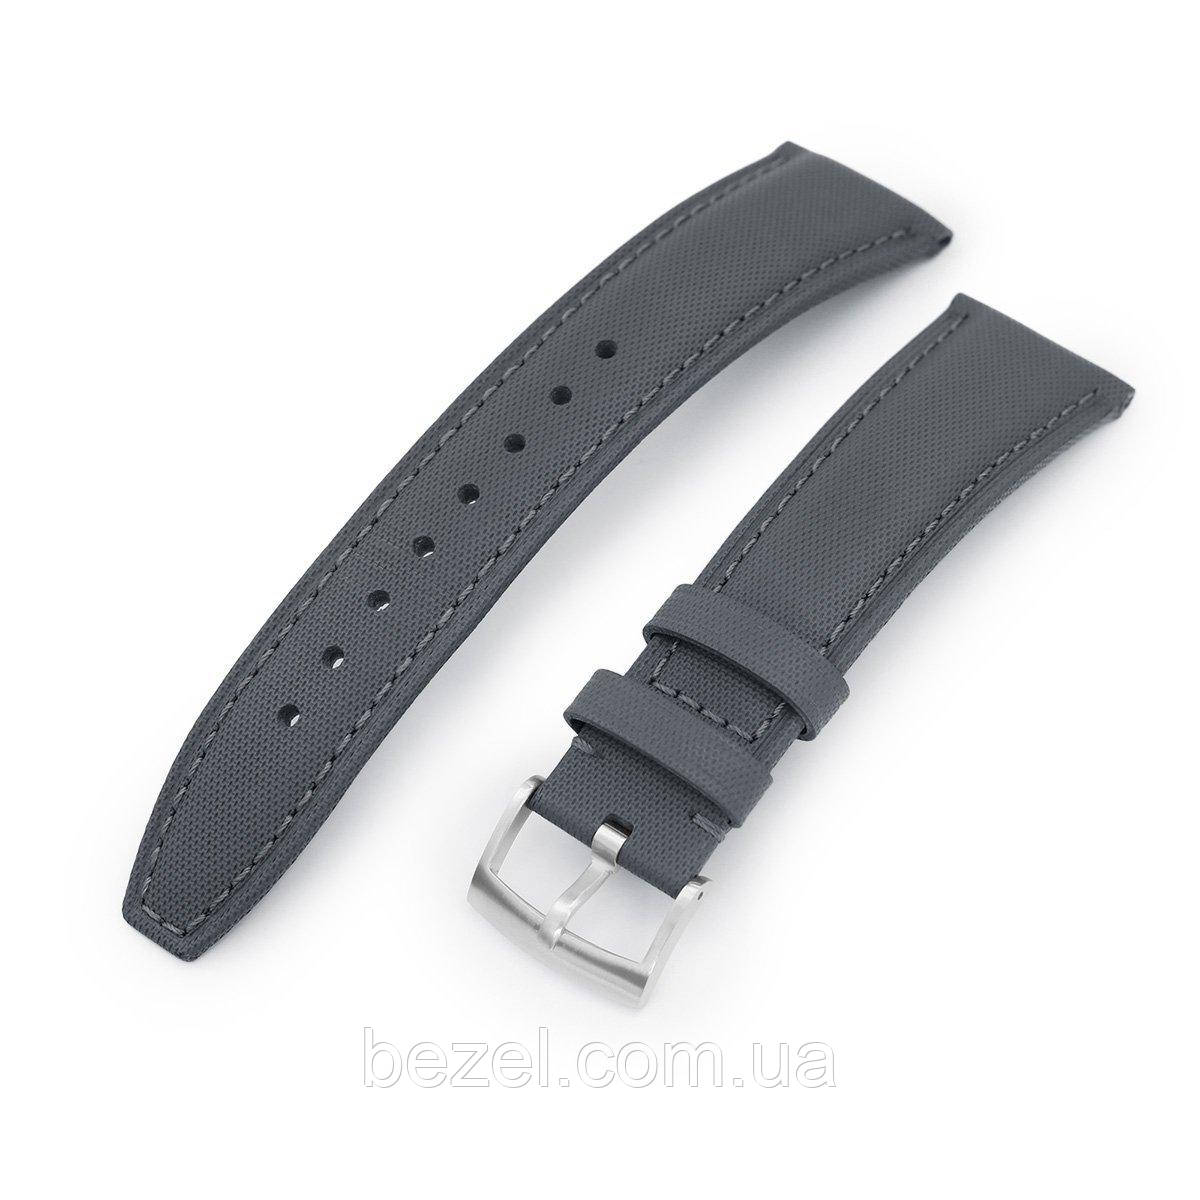 20mm or 22mm Military Grey Kevlar Finish Watch Strap, Brushed